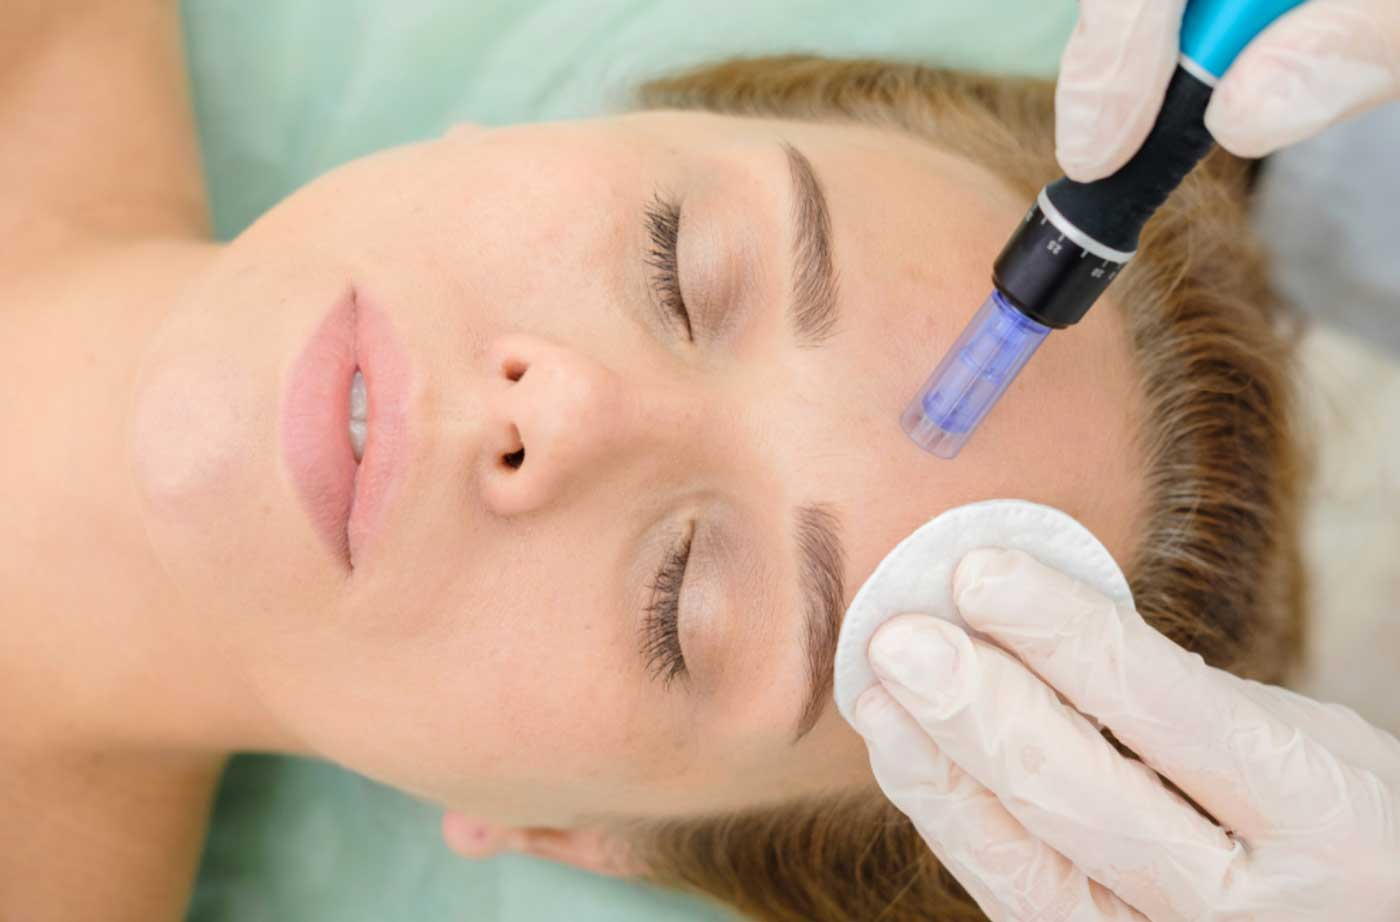 Why are Celebs obsessed with Microneedling